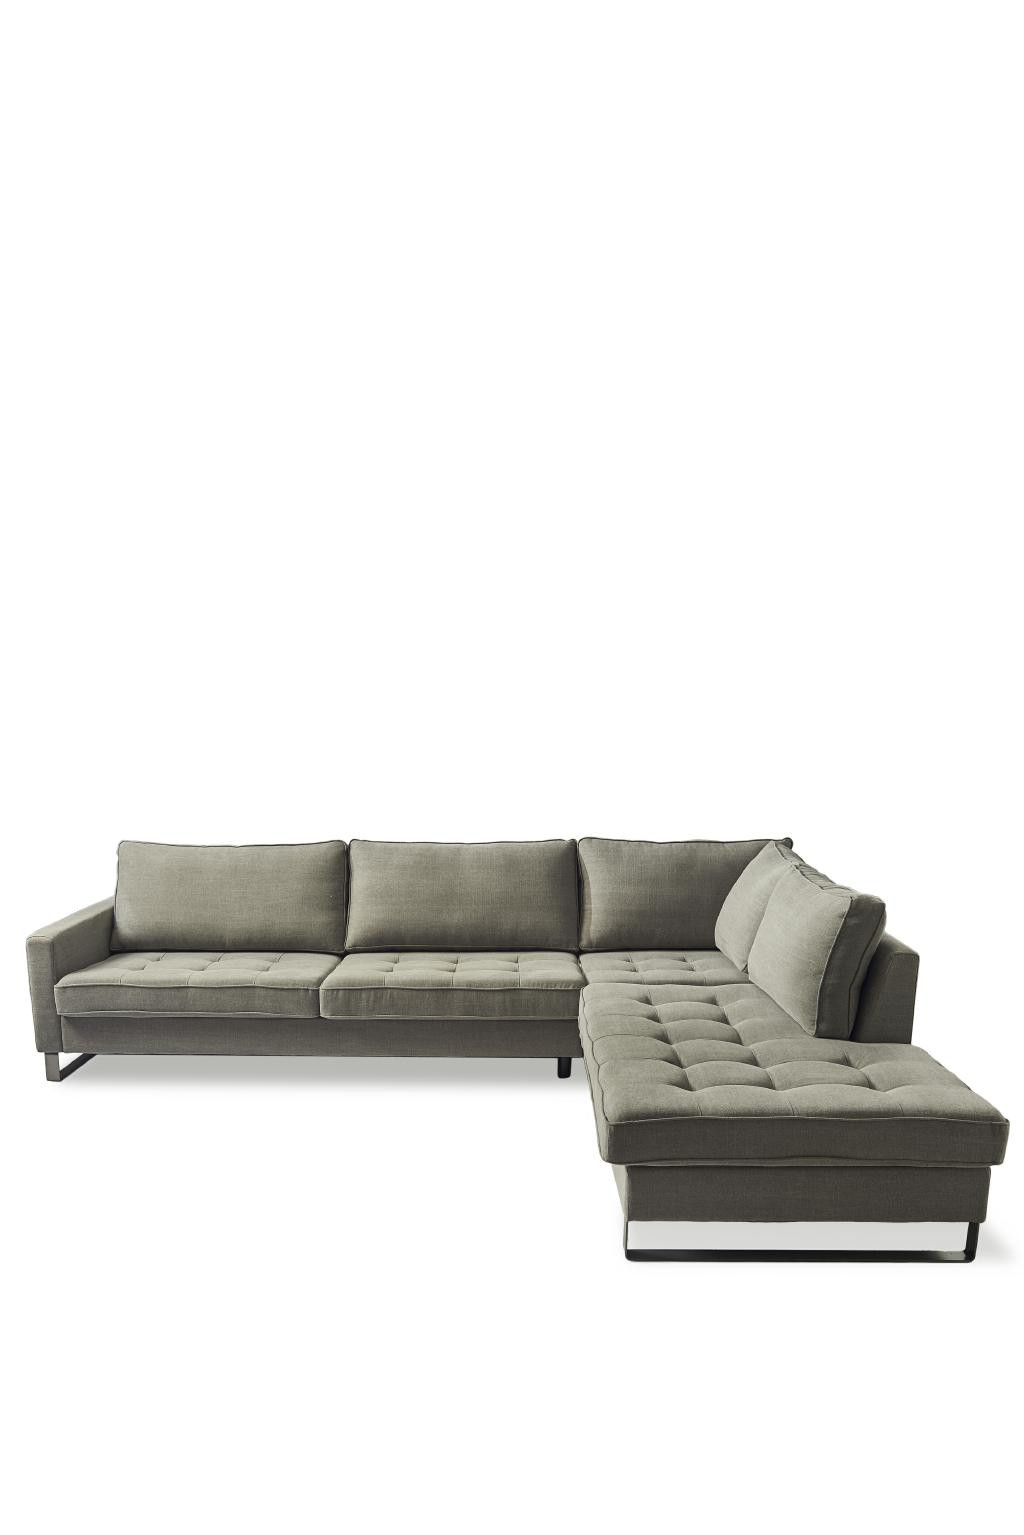 West Houston Corner Sofa Chaise Longue Right, cotton, stone / Rivièra Maison